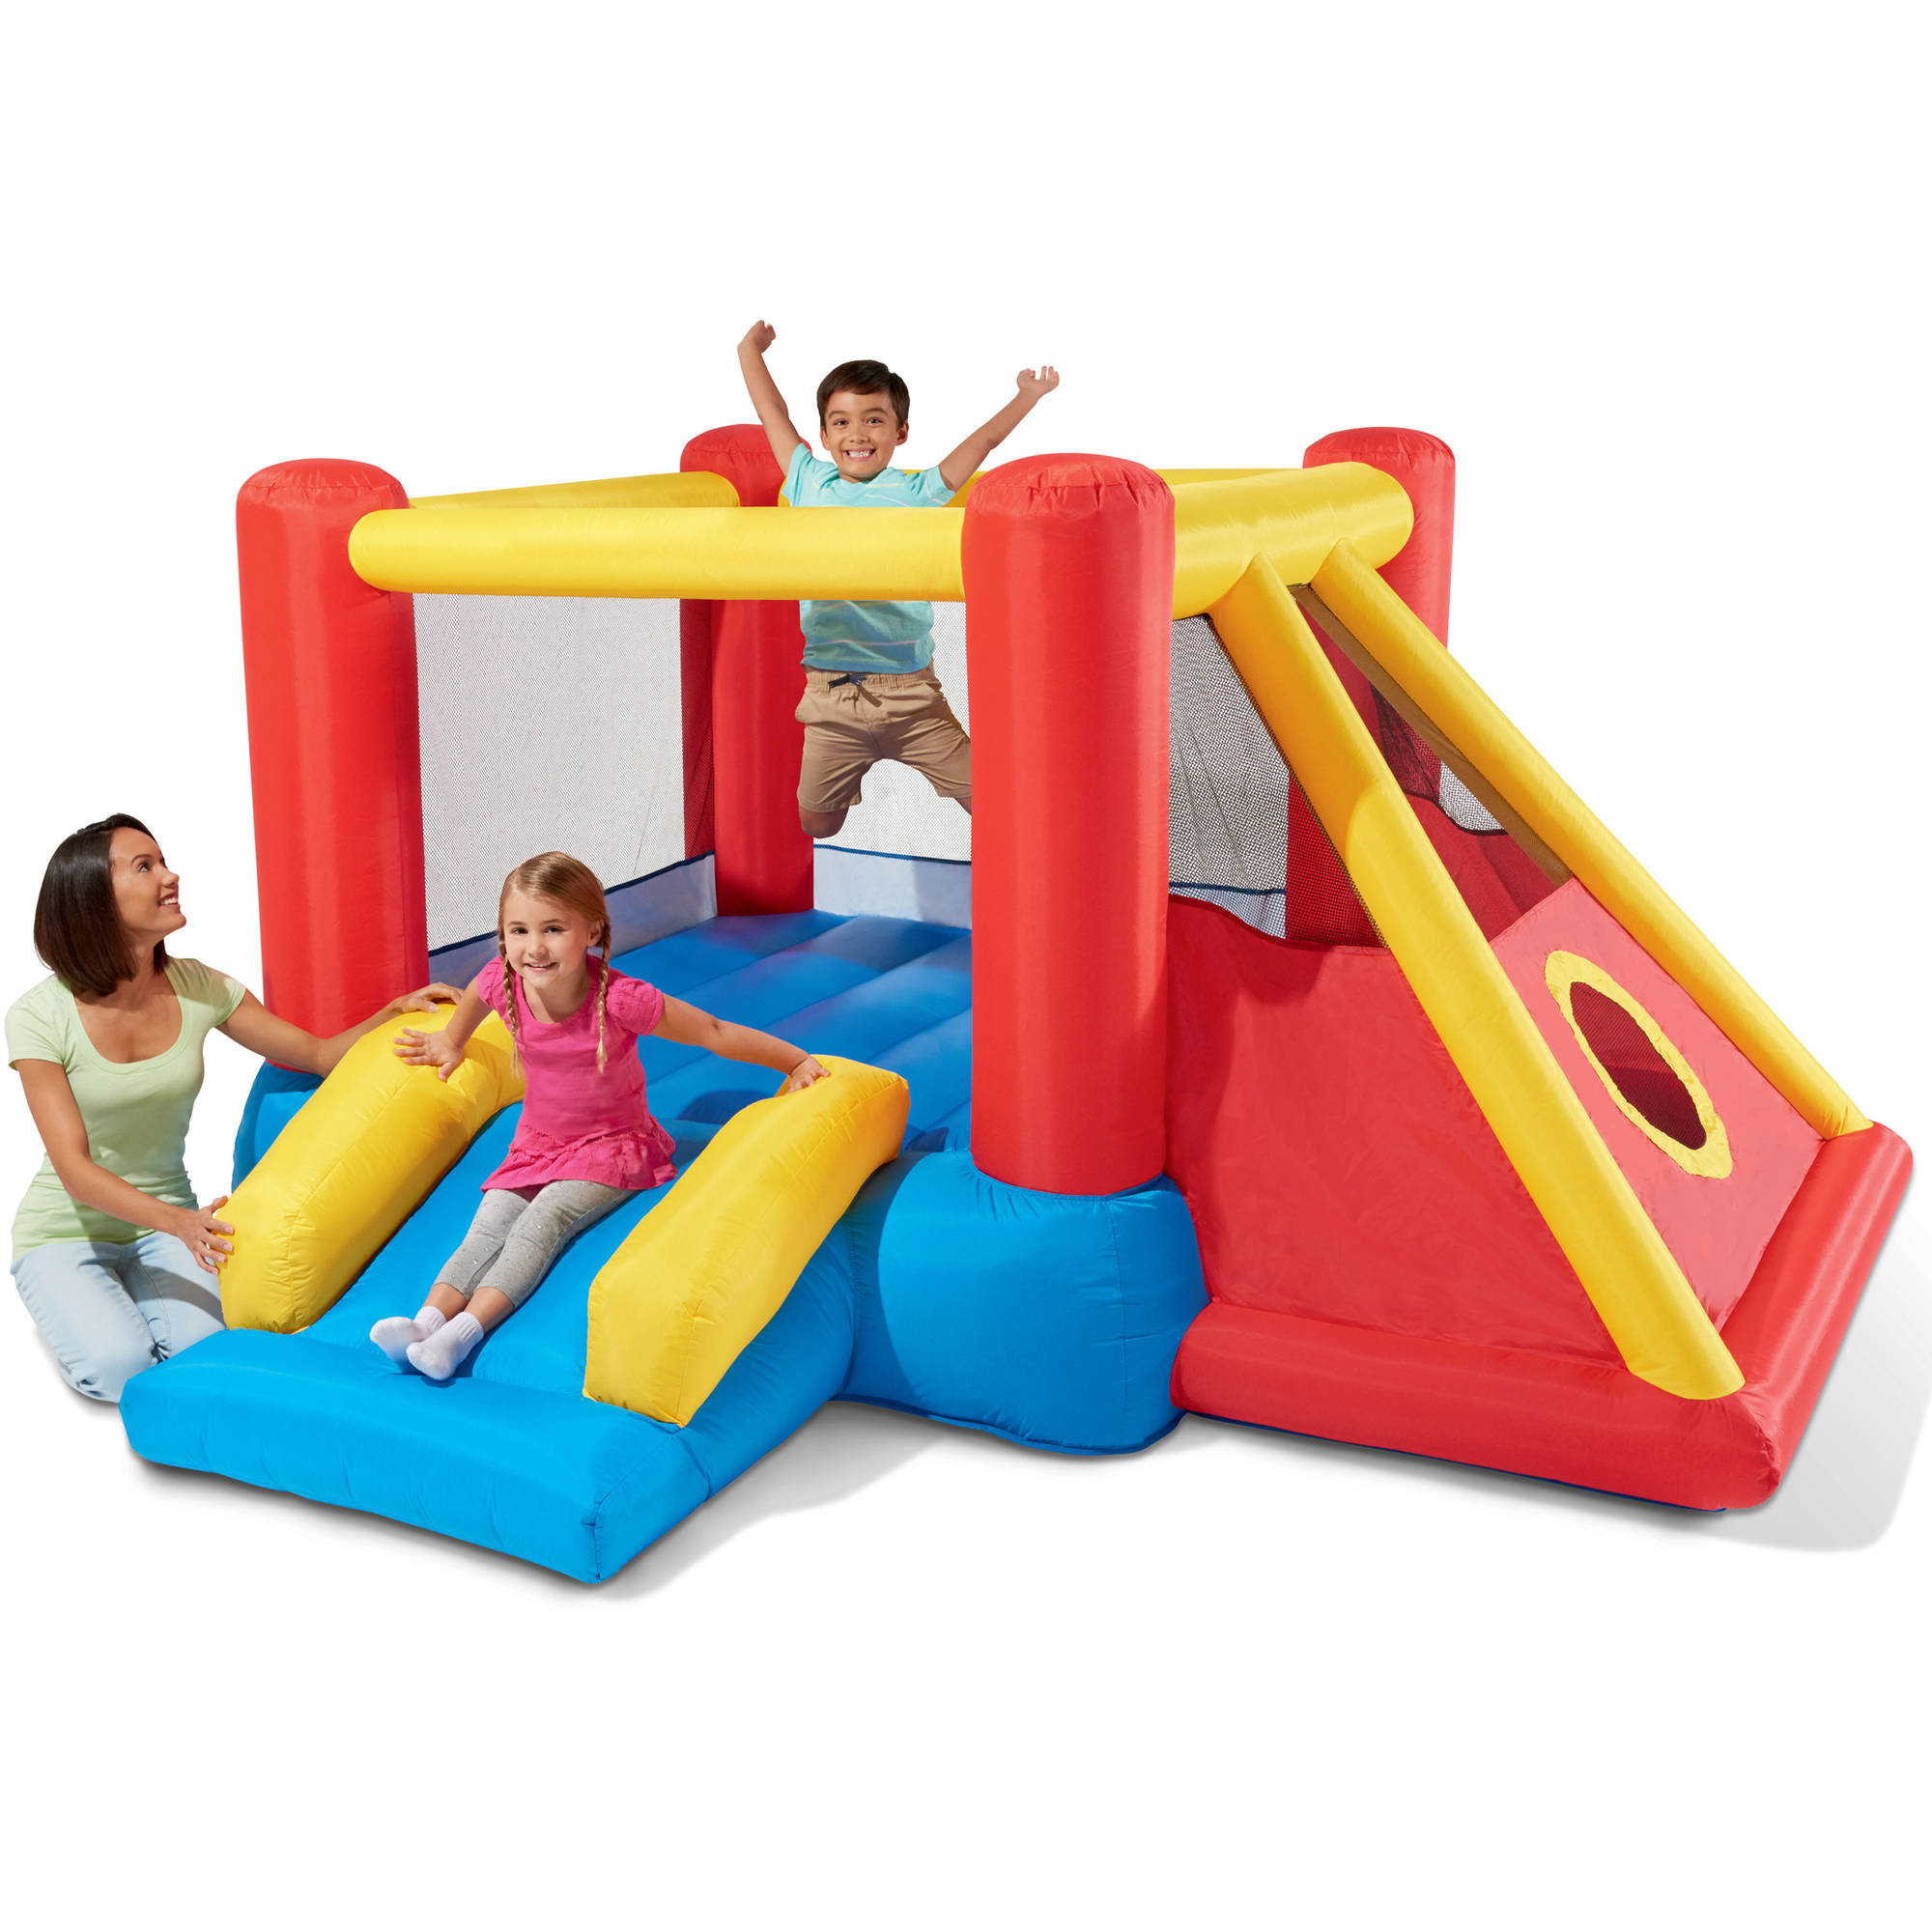 Teepee Bounce House